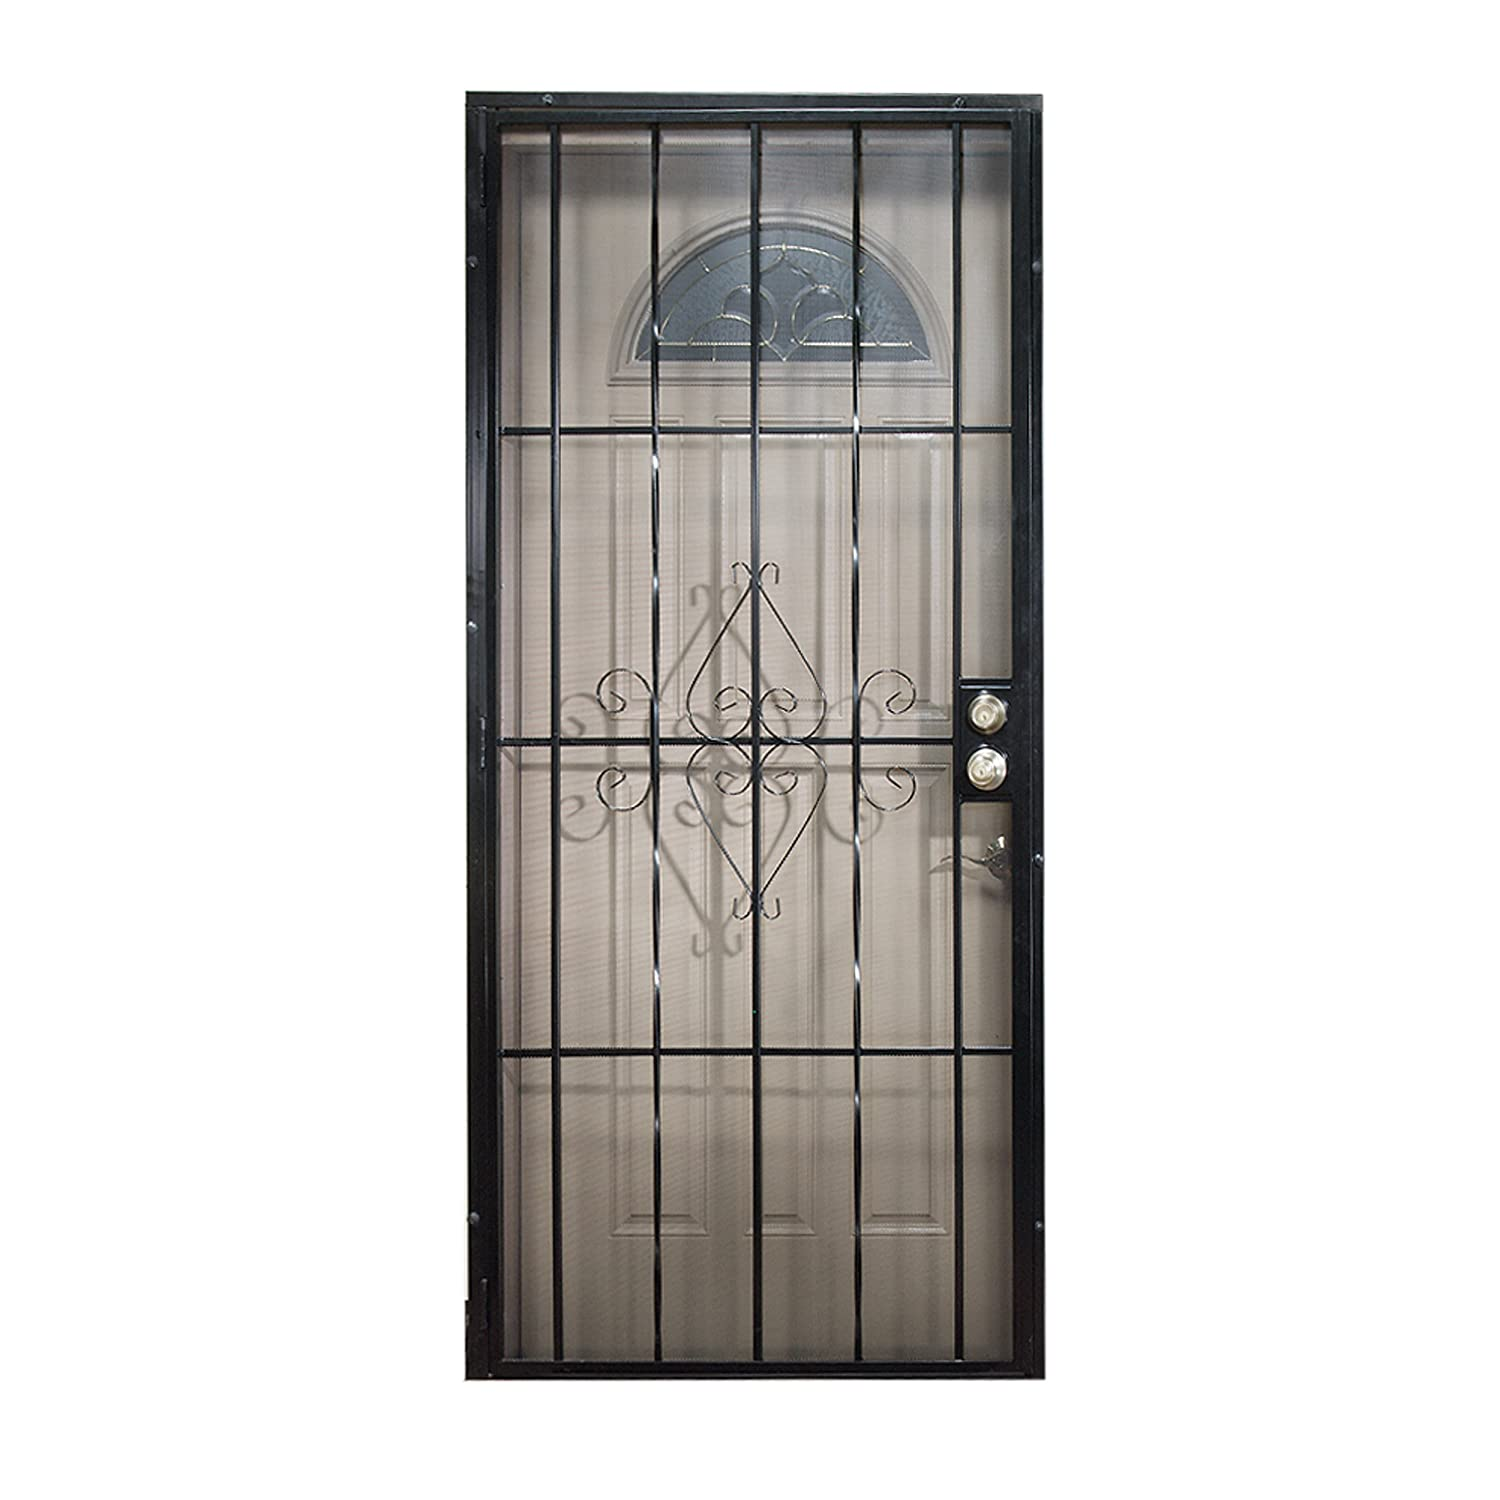 Buy Doors Online Buy Exterior French Doors Online Doors For Home Photos Amp Video